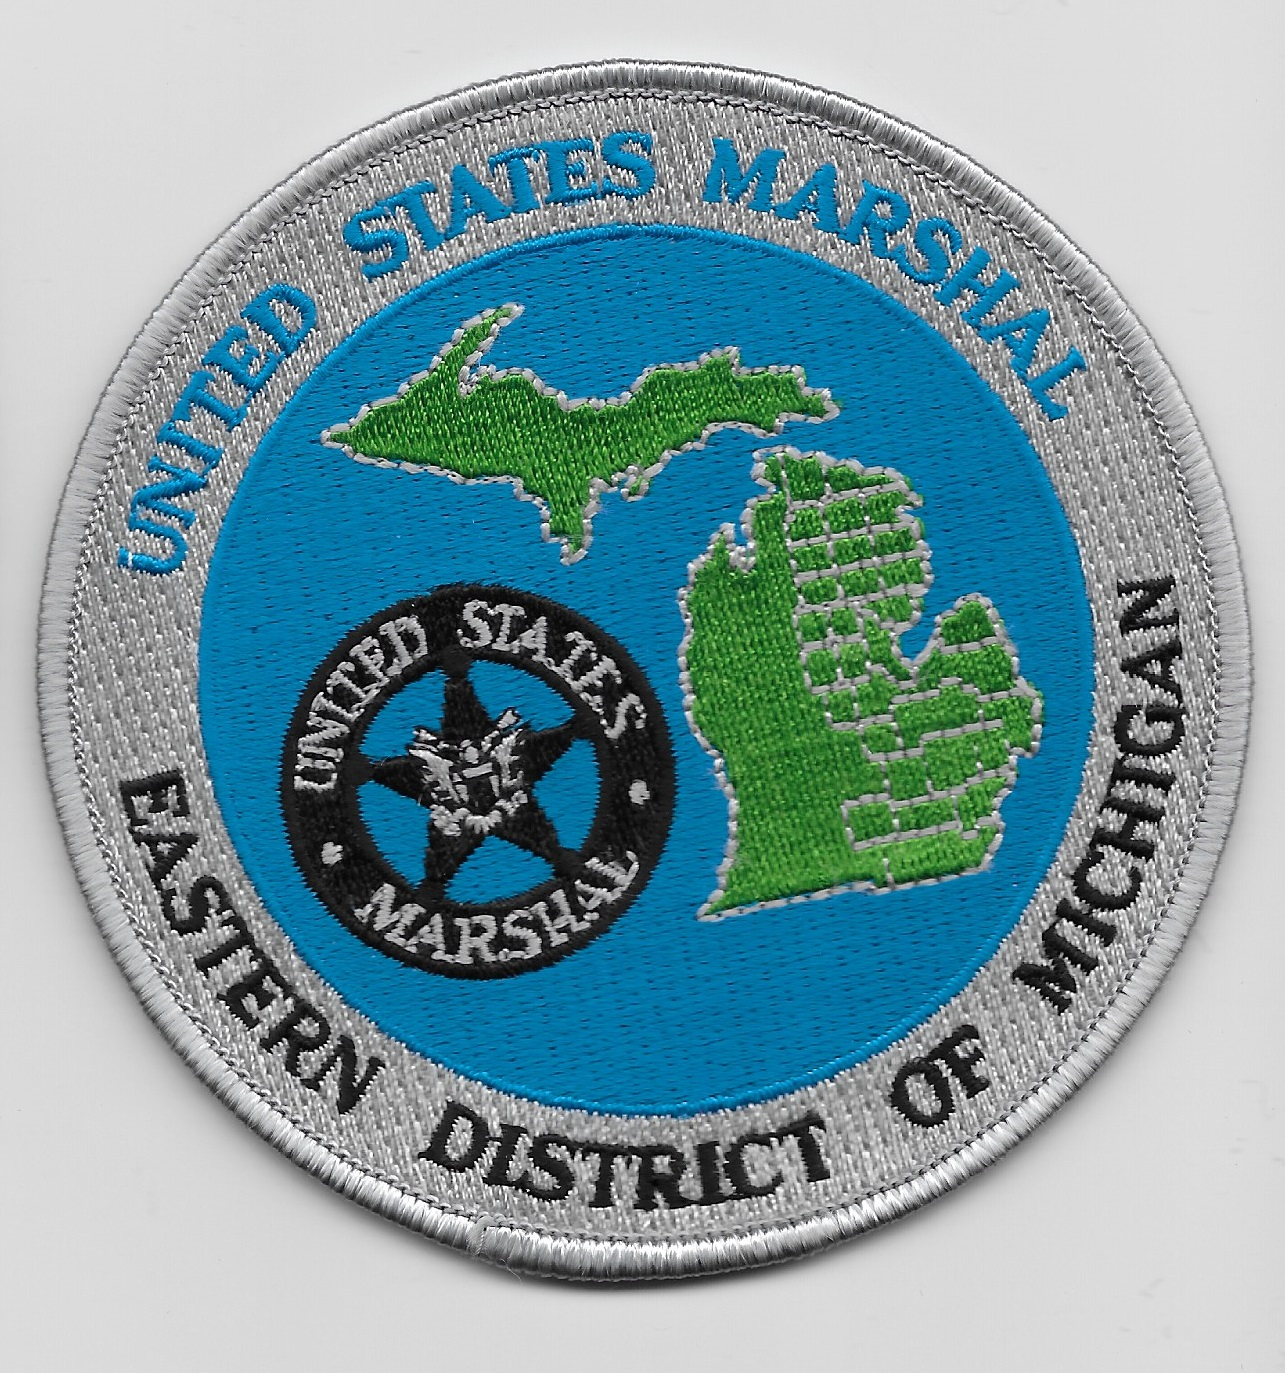 US Marshal E Dist Michigan